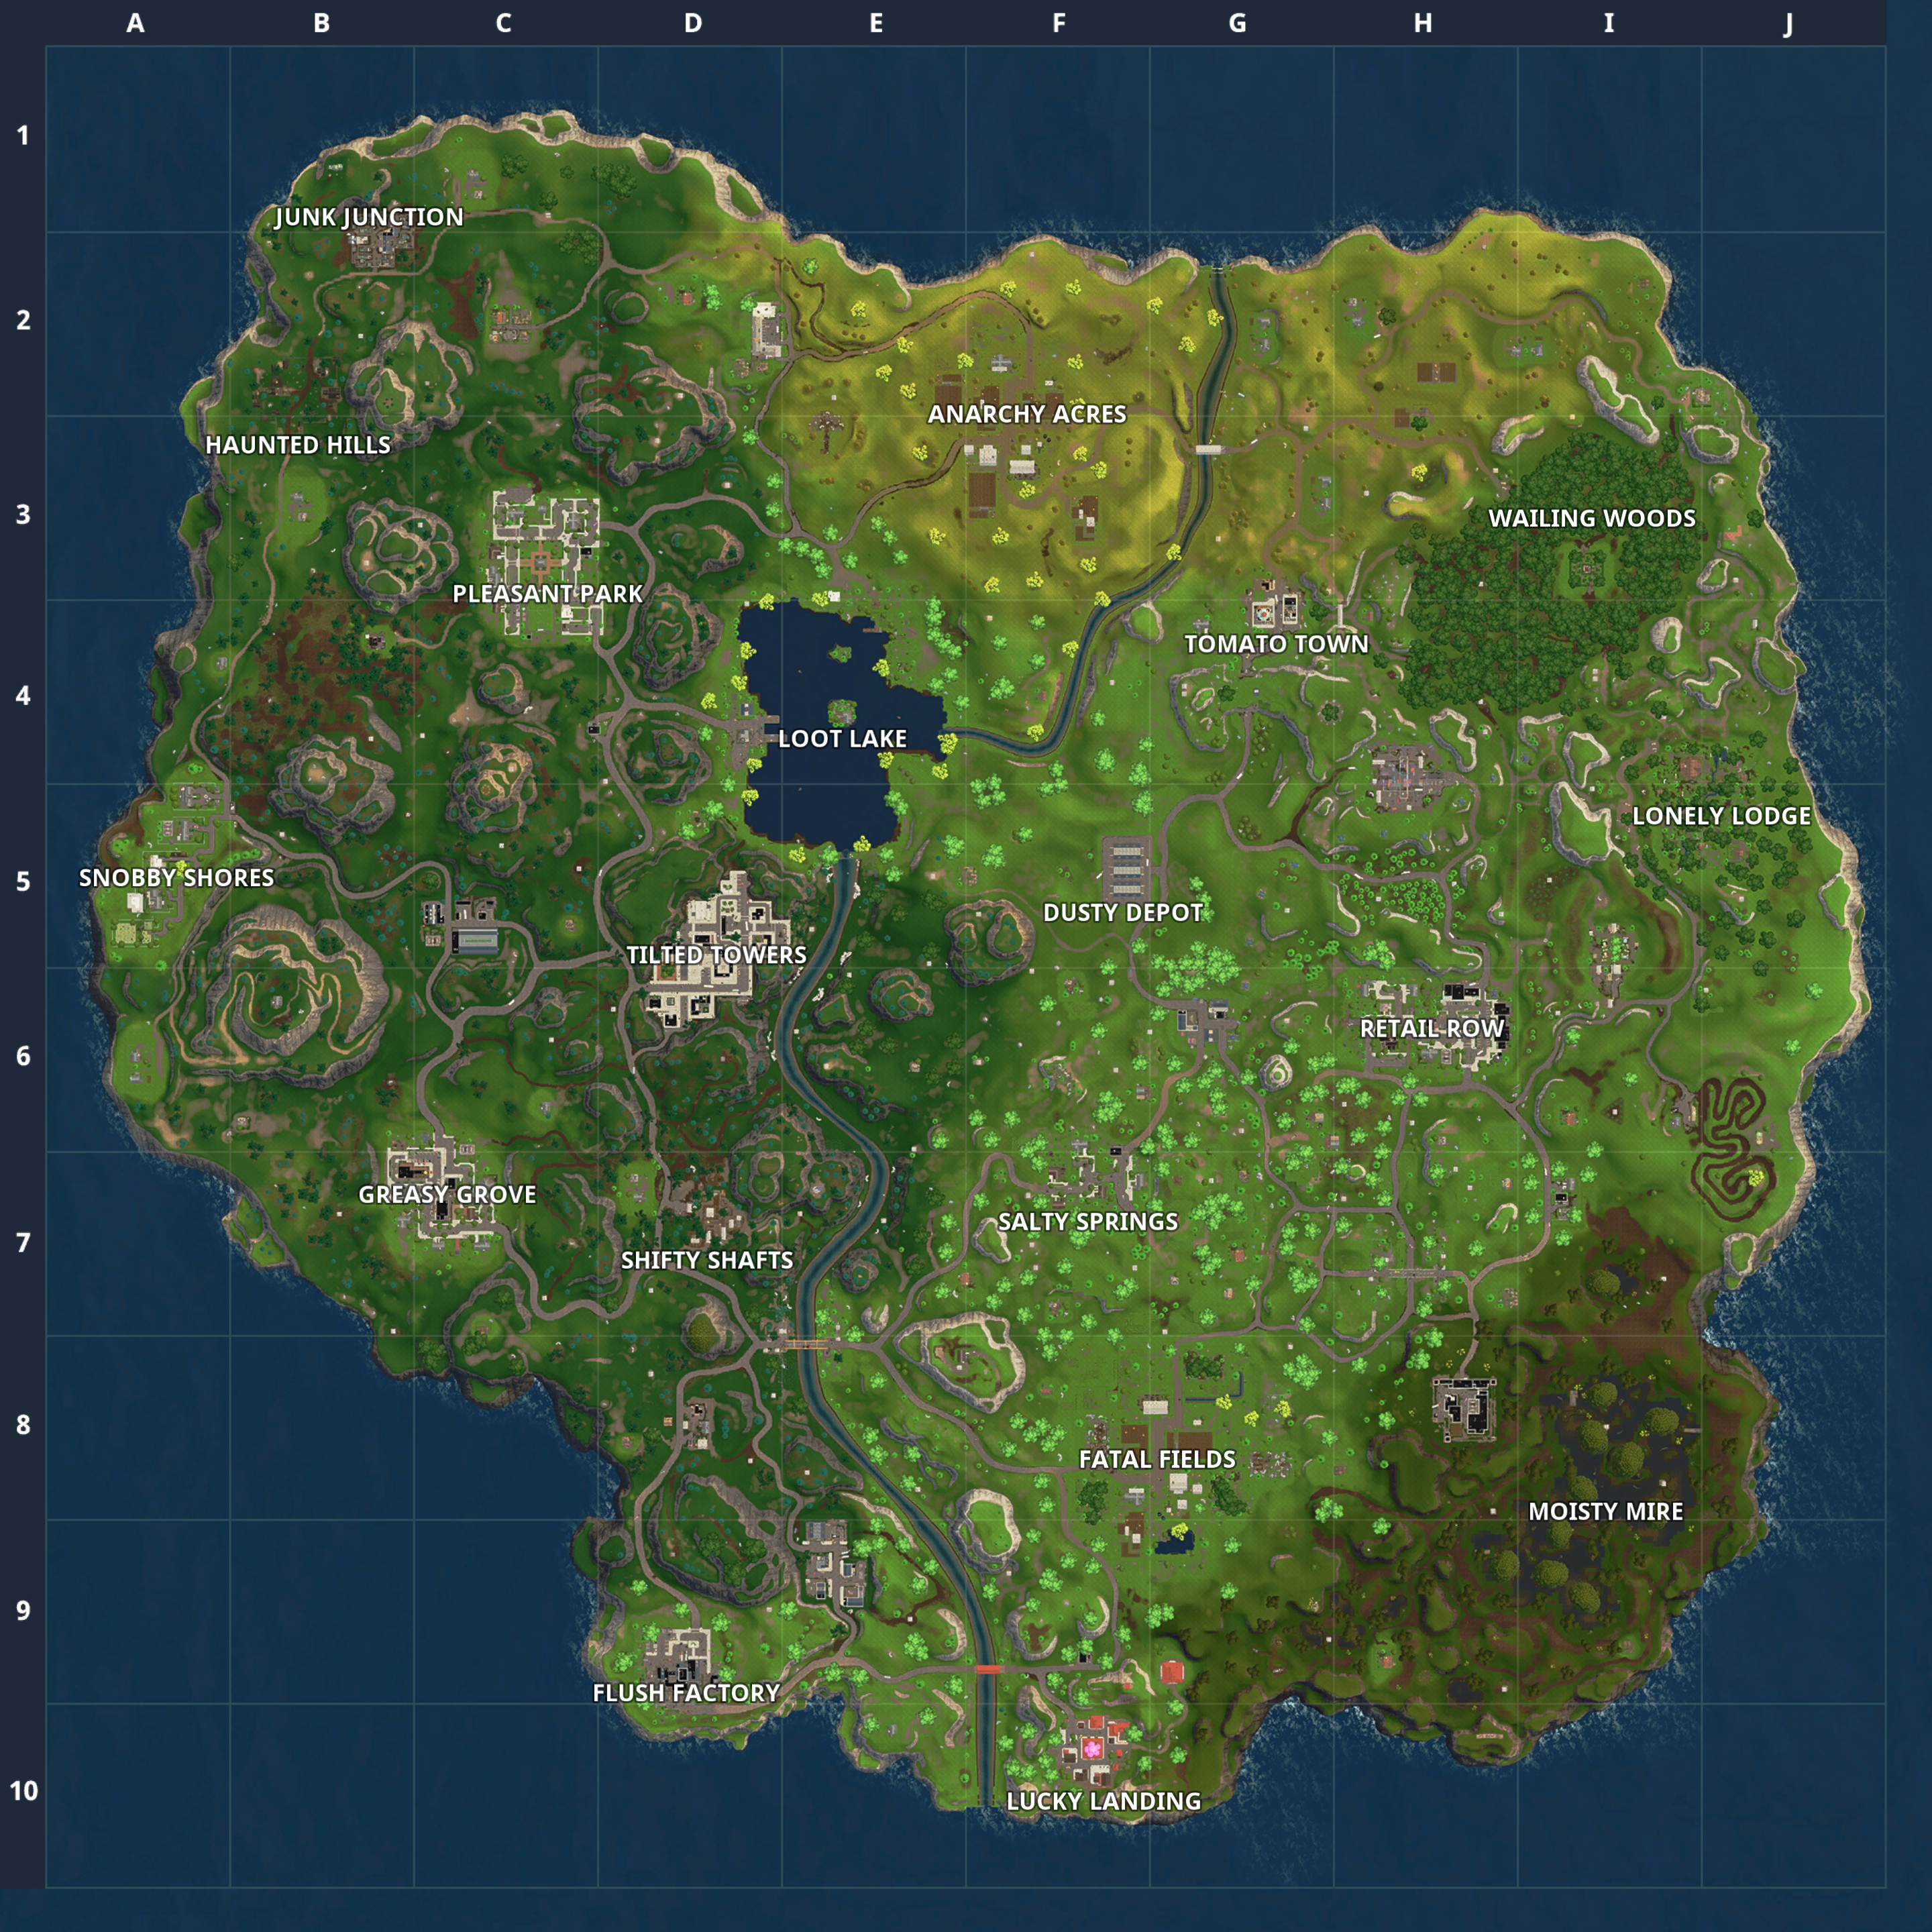 Fortnite Battle Royale Map: Chest Spawn Locations | Birthday ... on map desk, map calf, map brain, map furniture, map roman britain, map table, map cabinet, map face, map of pinconning michigan, map clothing, map heart, map hands, map of cheat lake wv, map tongue, map drawers, map of lakes in france, map of alton illinois area, map compass north, map box,